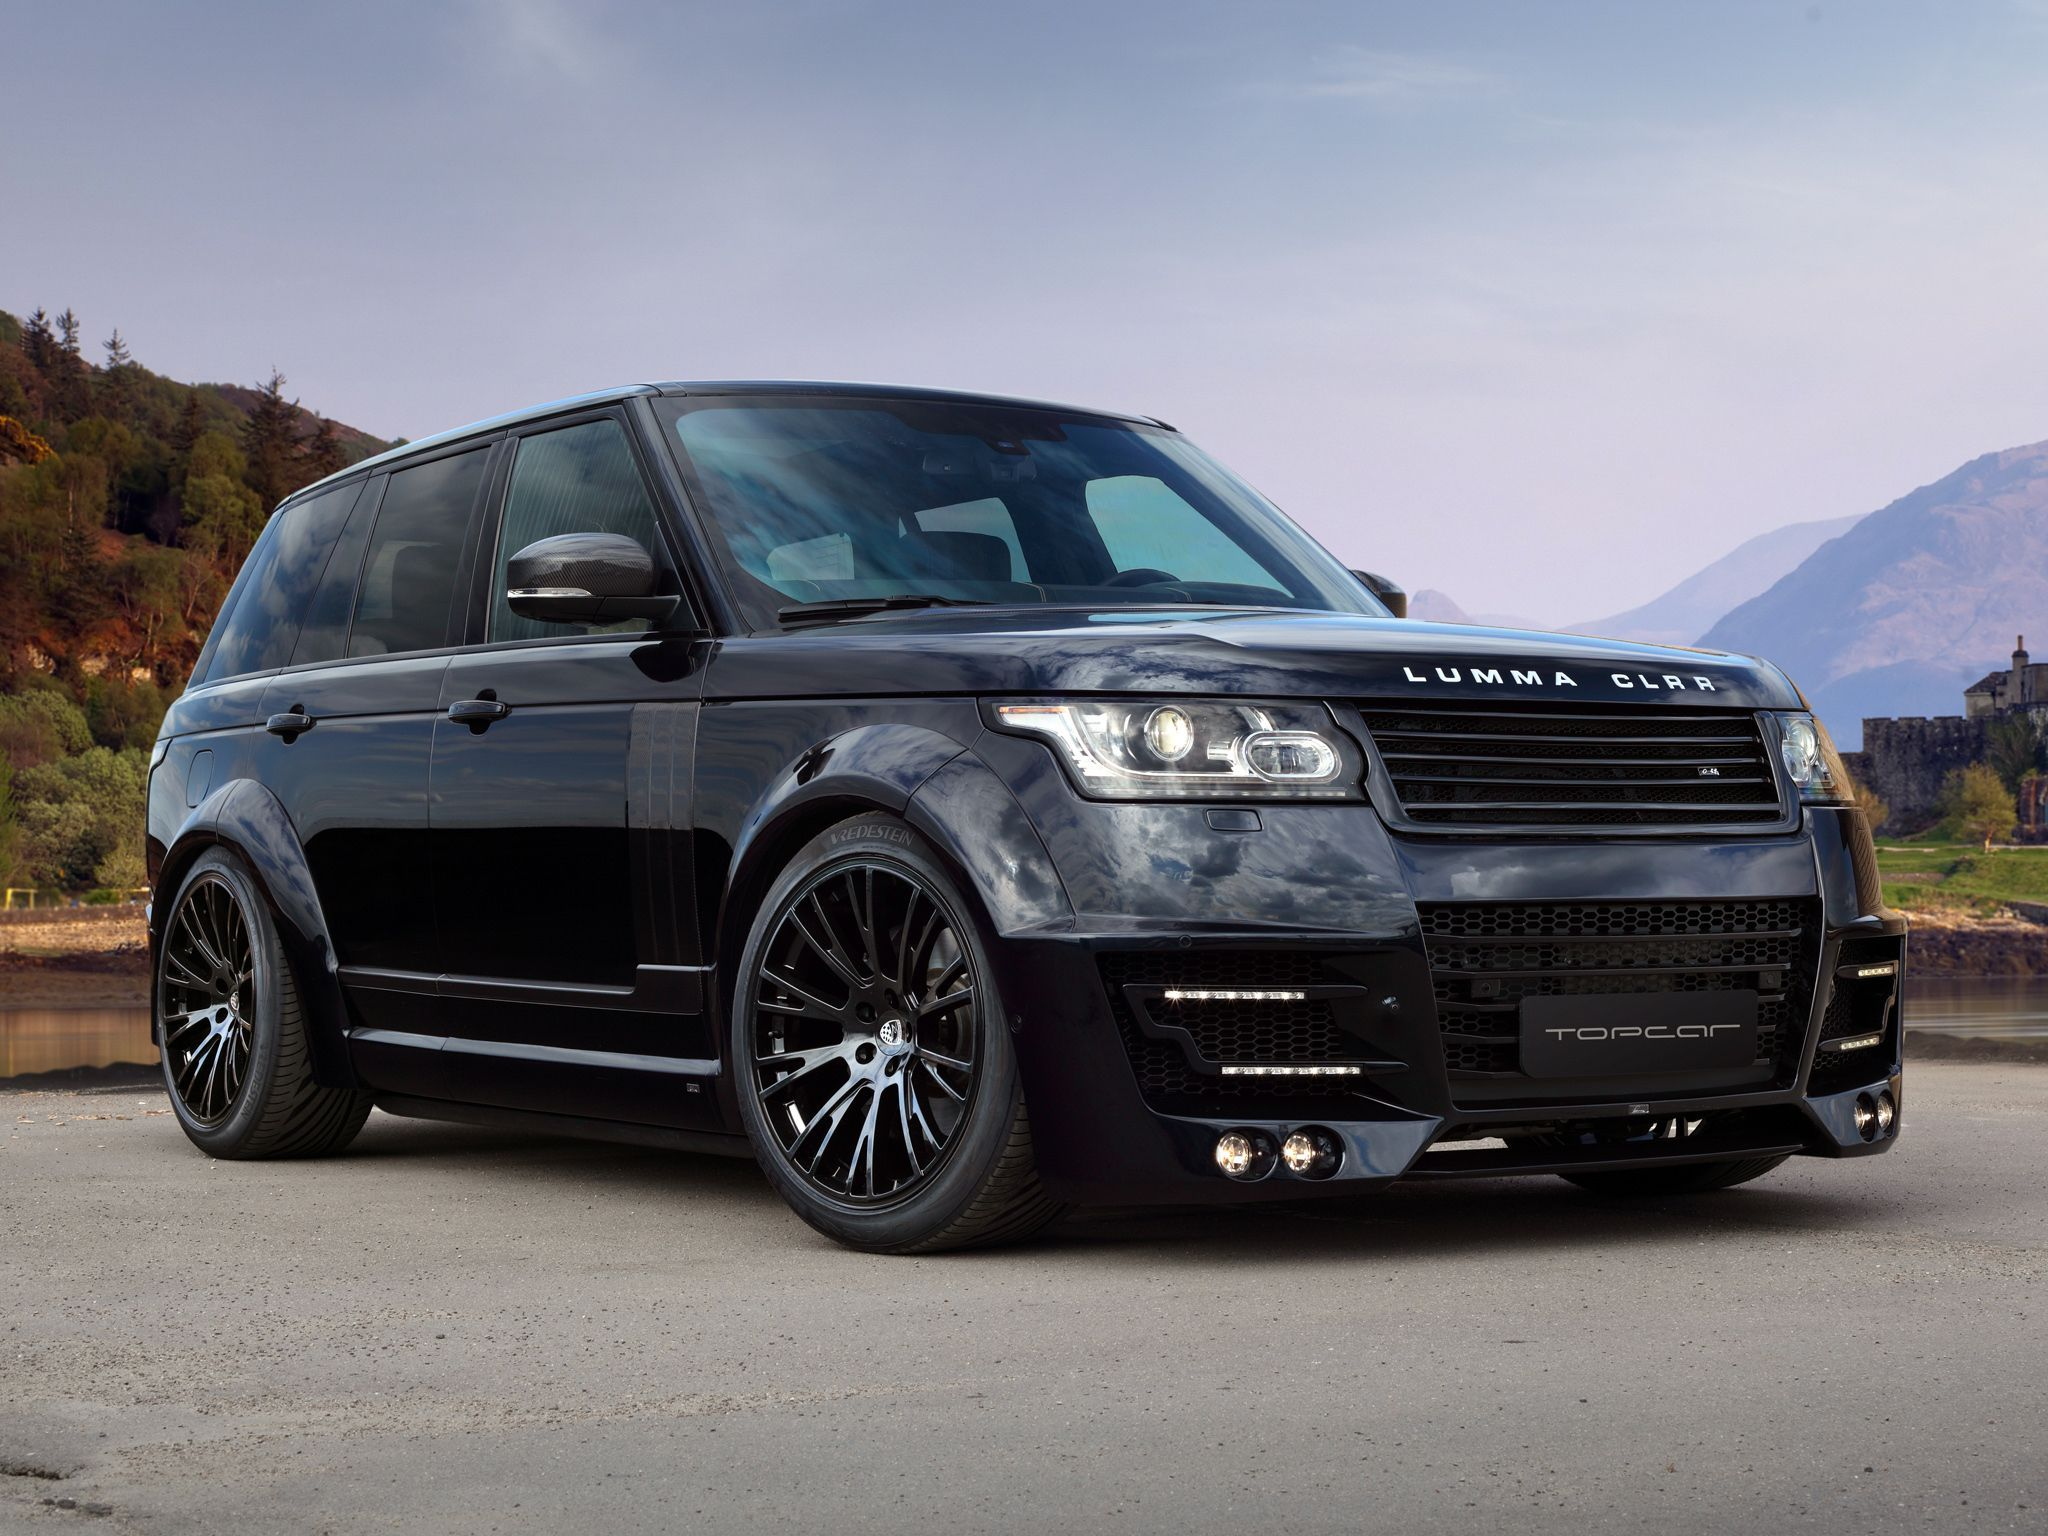 The Most Luxury Cars In The World With Best Photos Of Cars Luxury Suv Range Rover Range Rover Sport